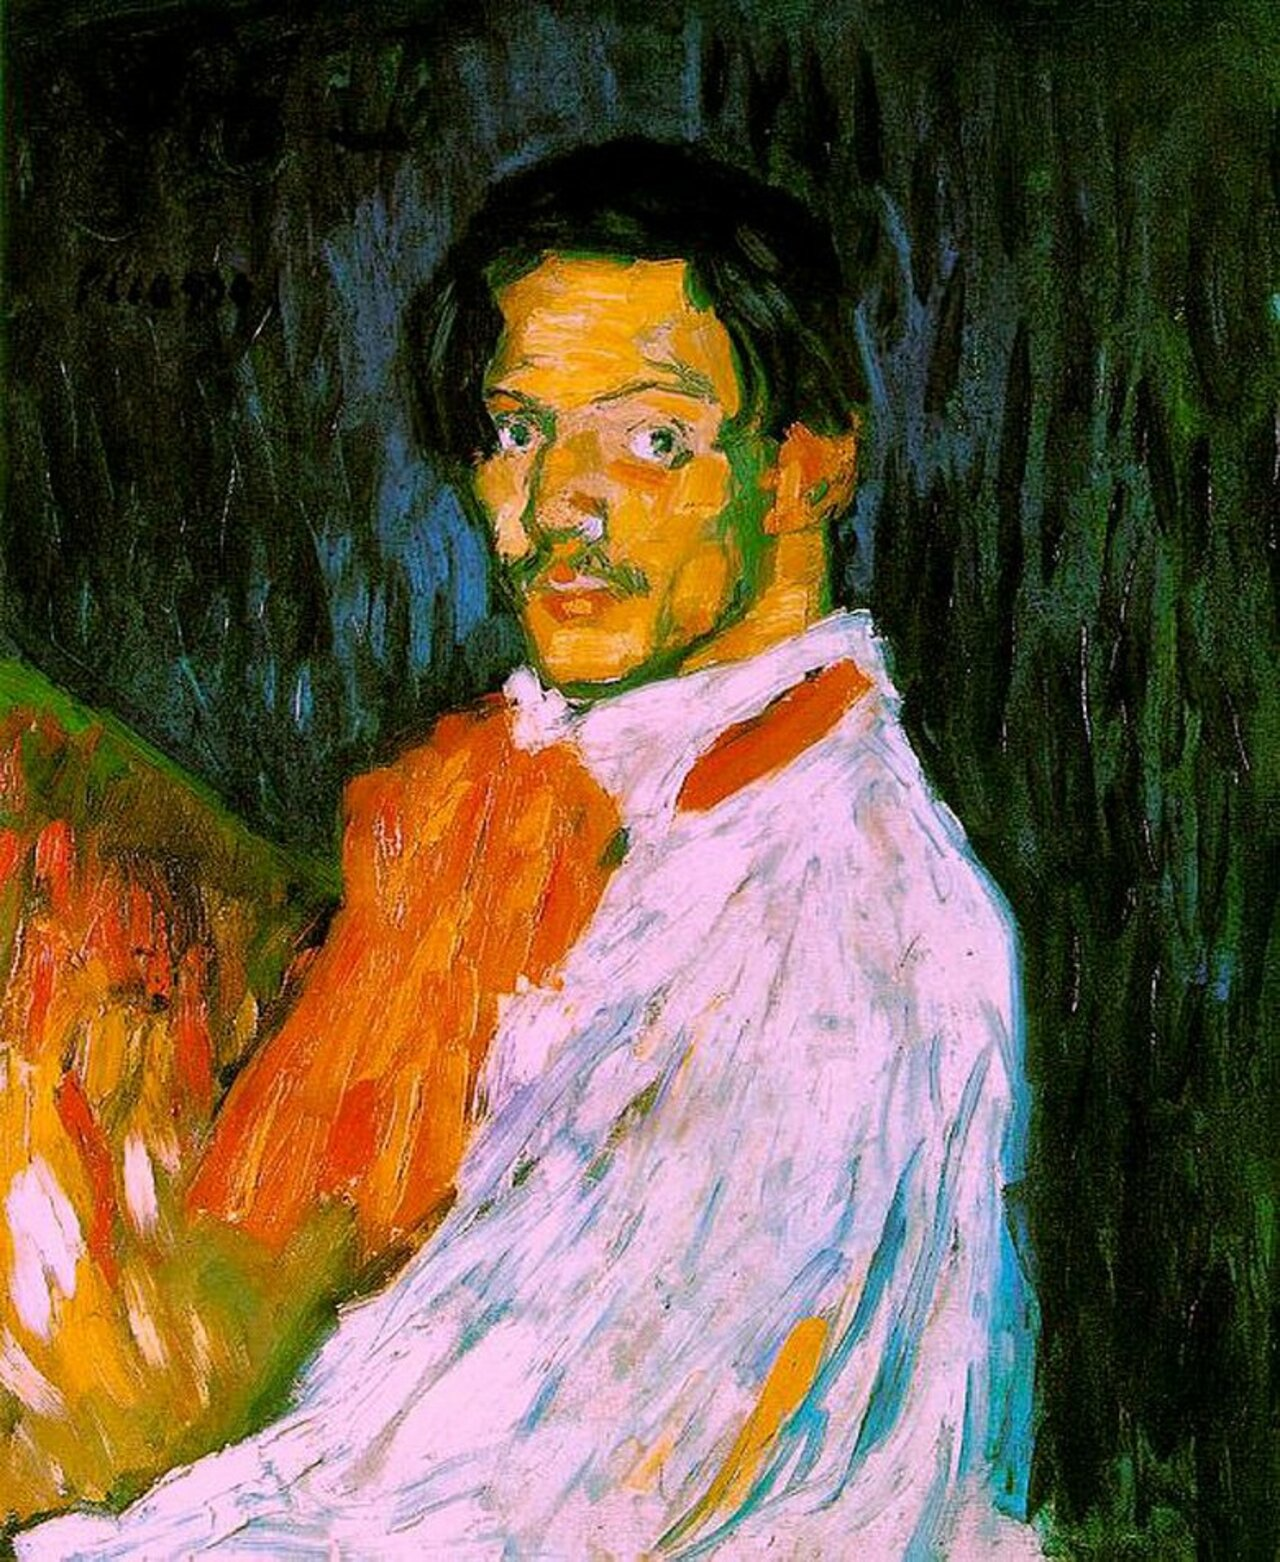 Self-Portrait #impressionism #picasso https://t.co/bOrcYGRUHd